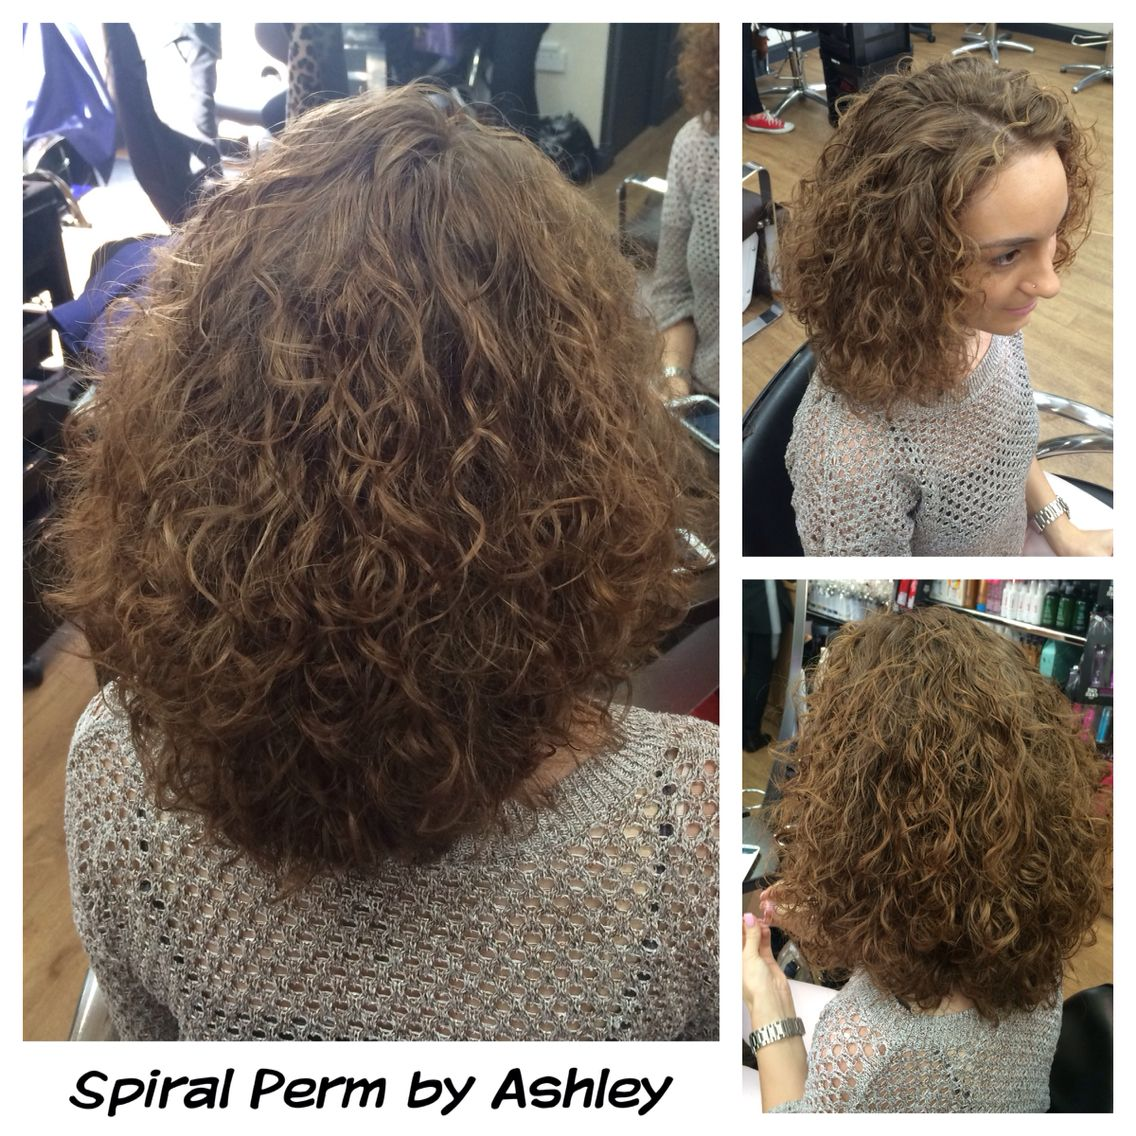 Spiral Perm by Ashley | Hairstyles in 2019 | Short permed ...